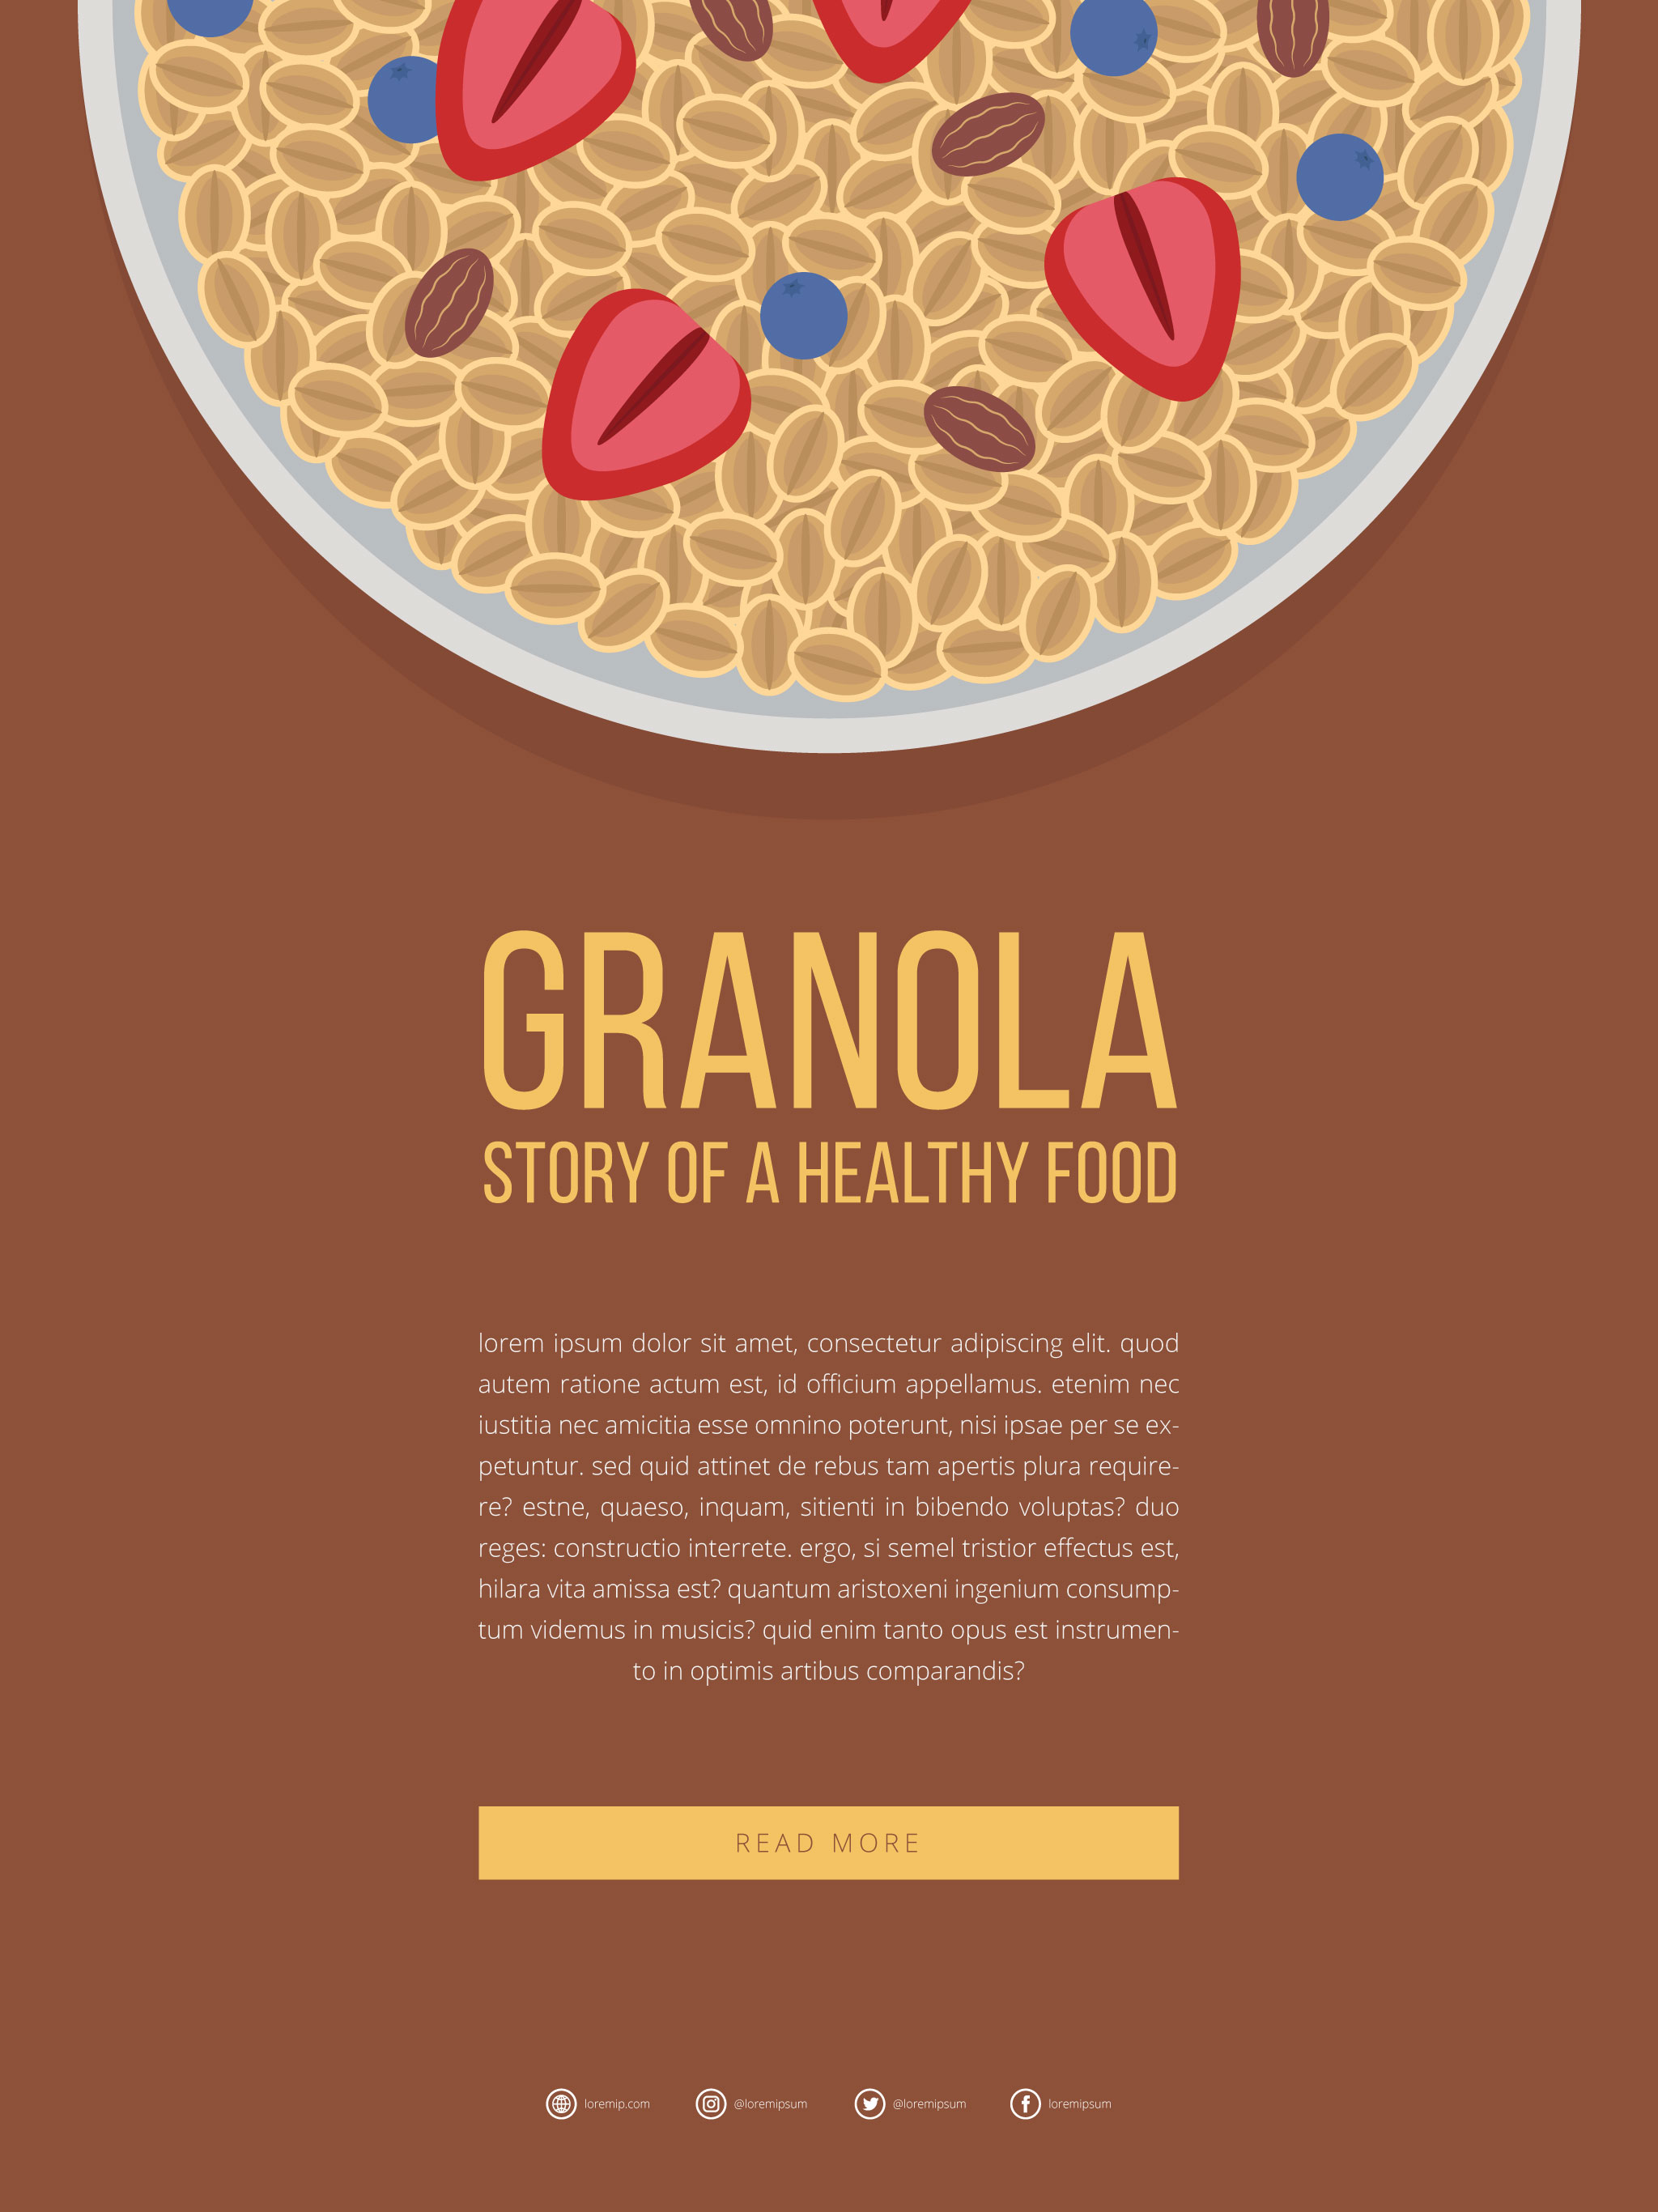 Granola Mobile Advertising Template - Download Free Vector Art, Stock Graphics & Images